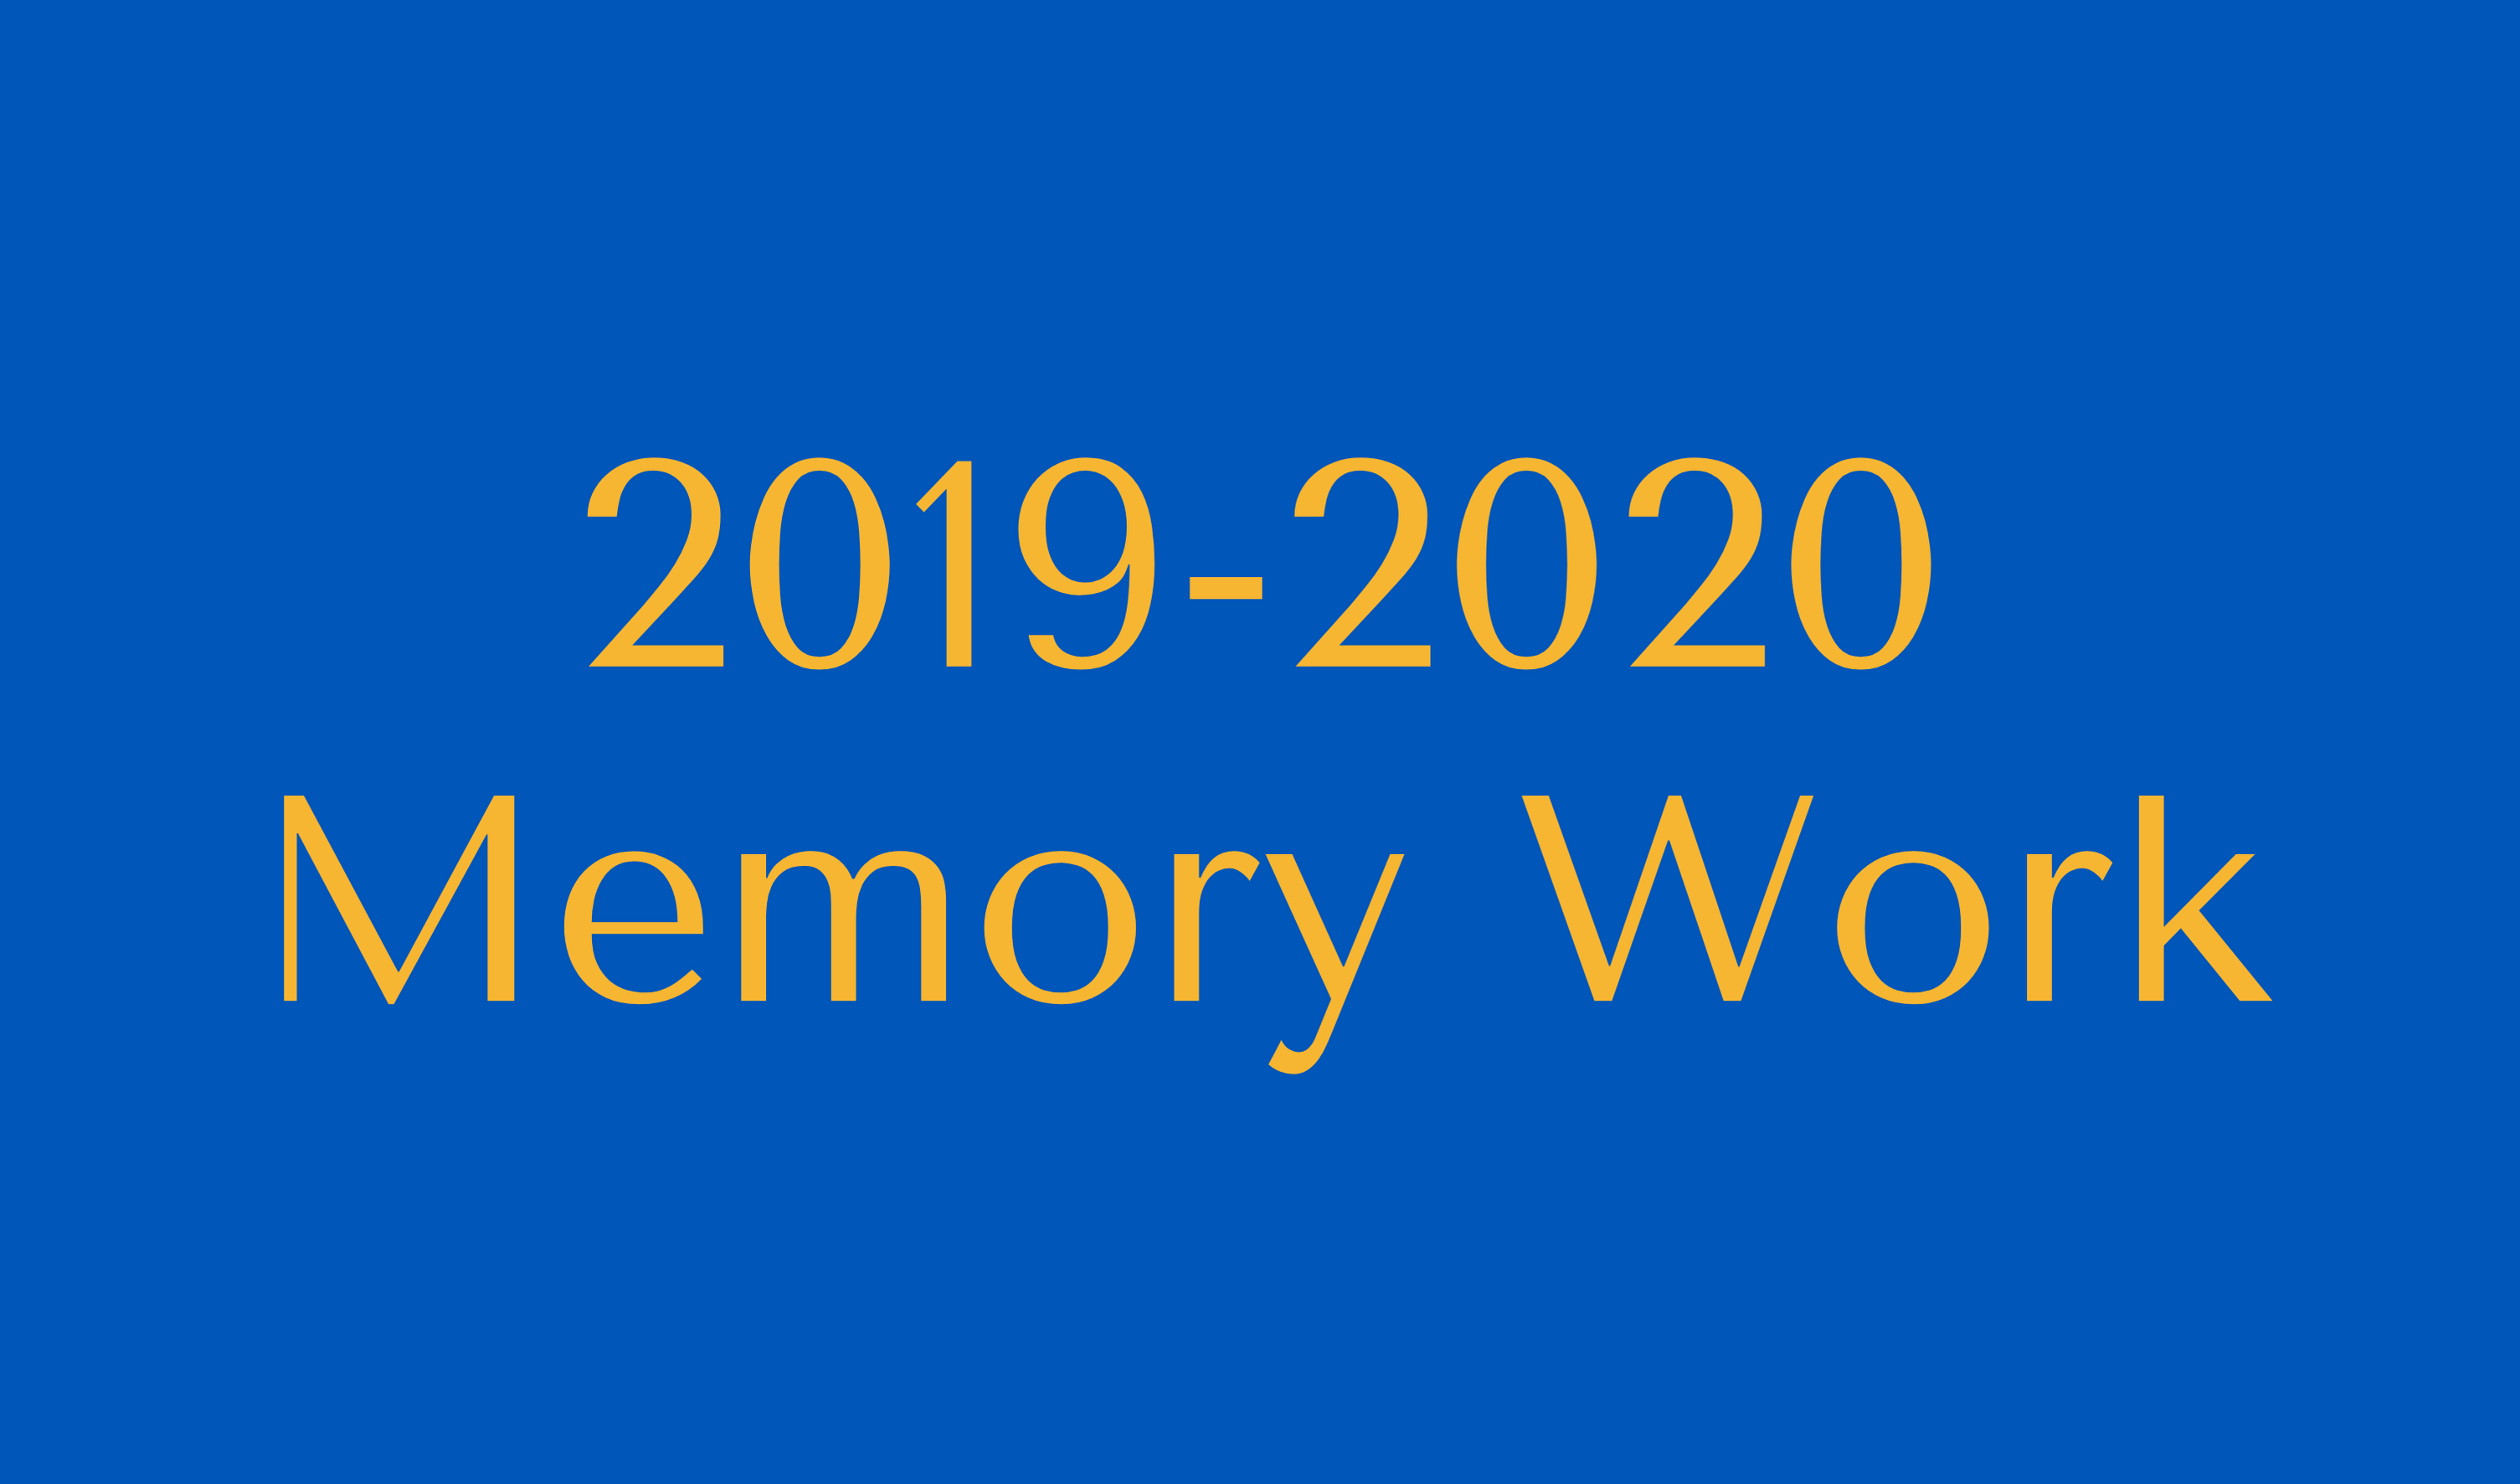 2019-2020 Memory Work Button